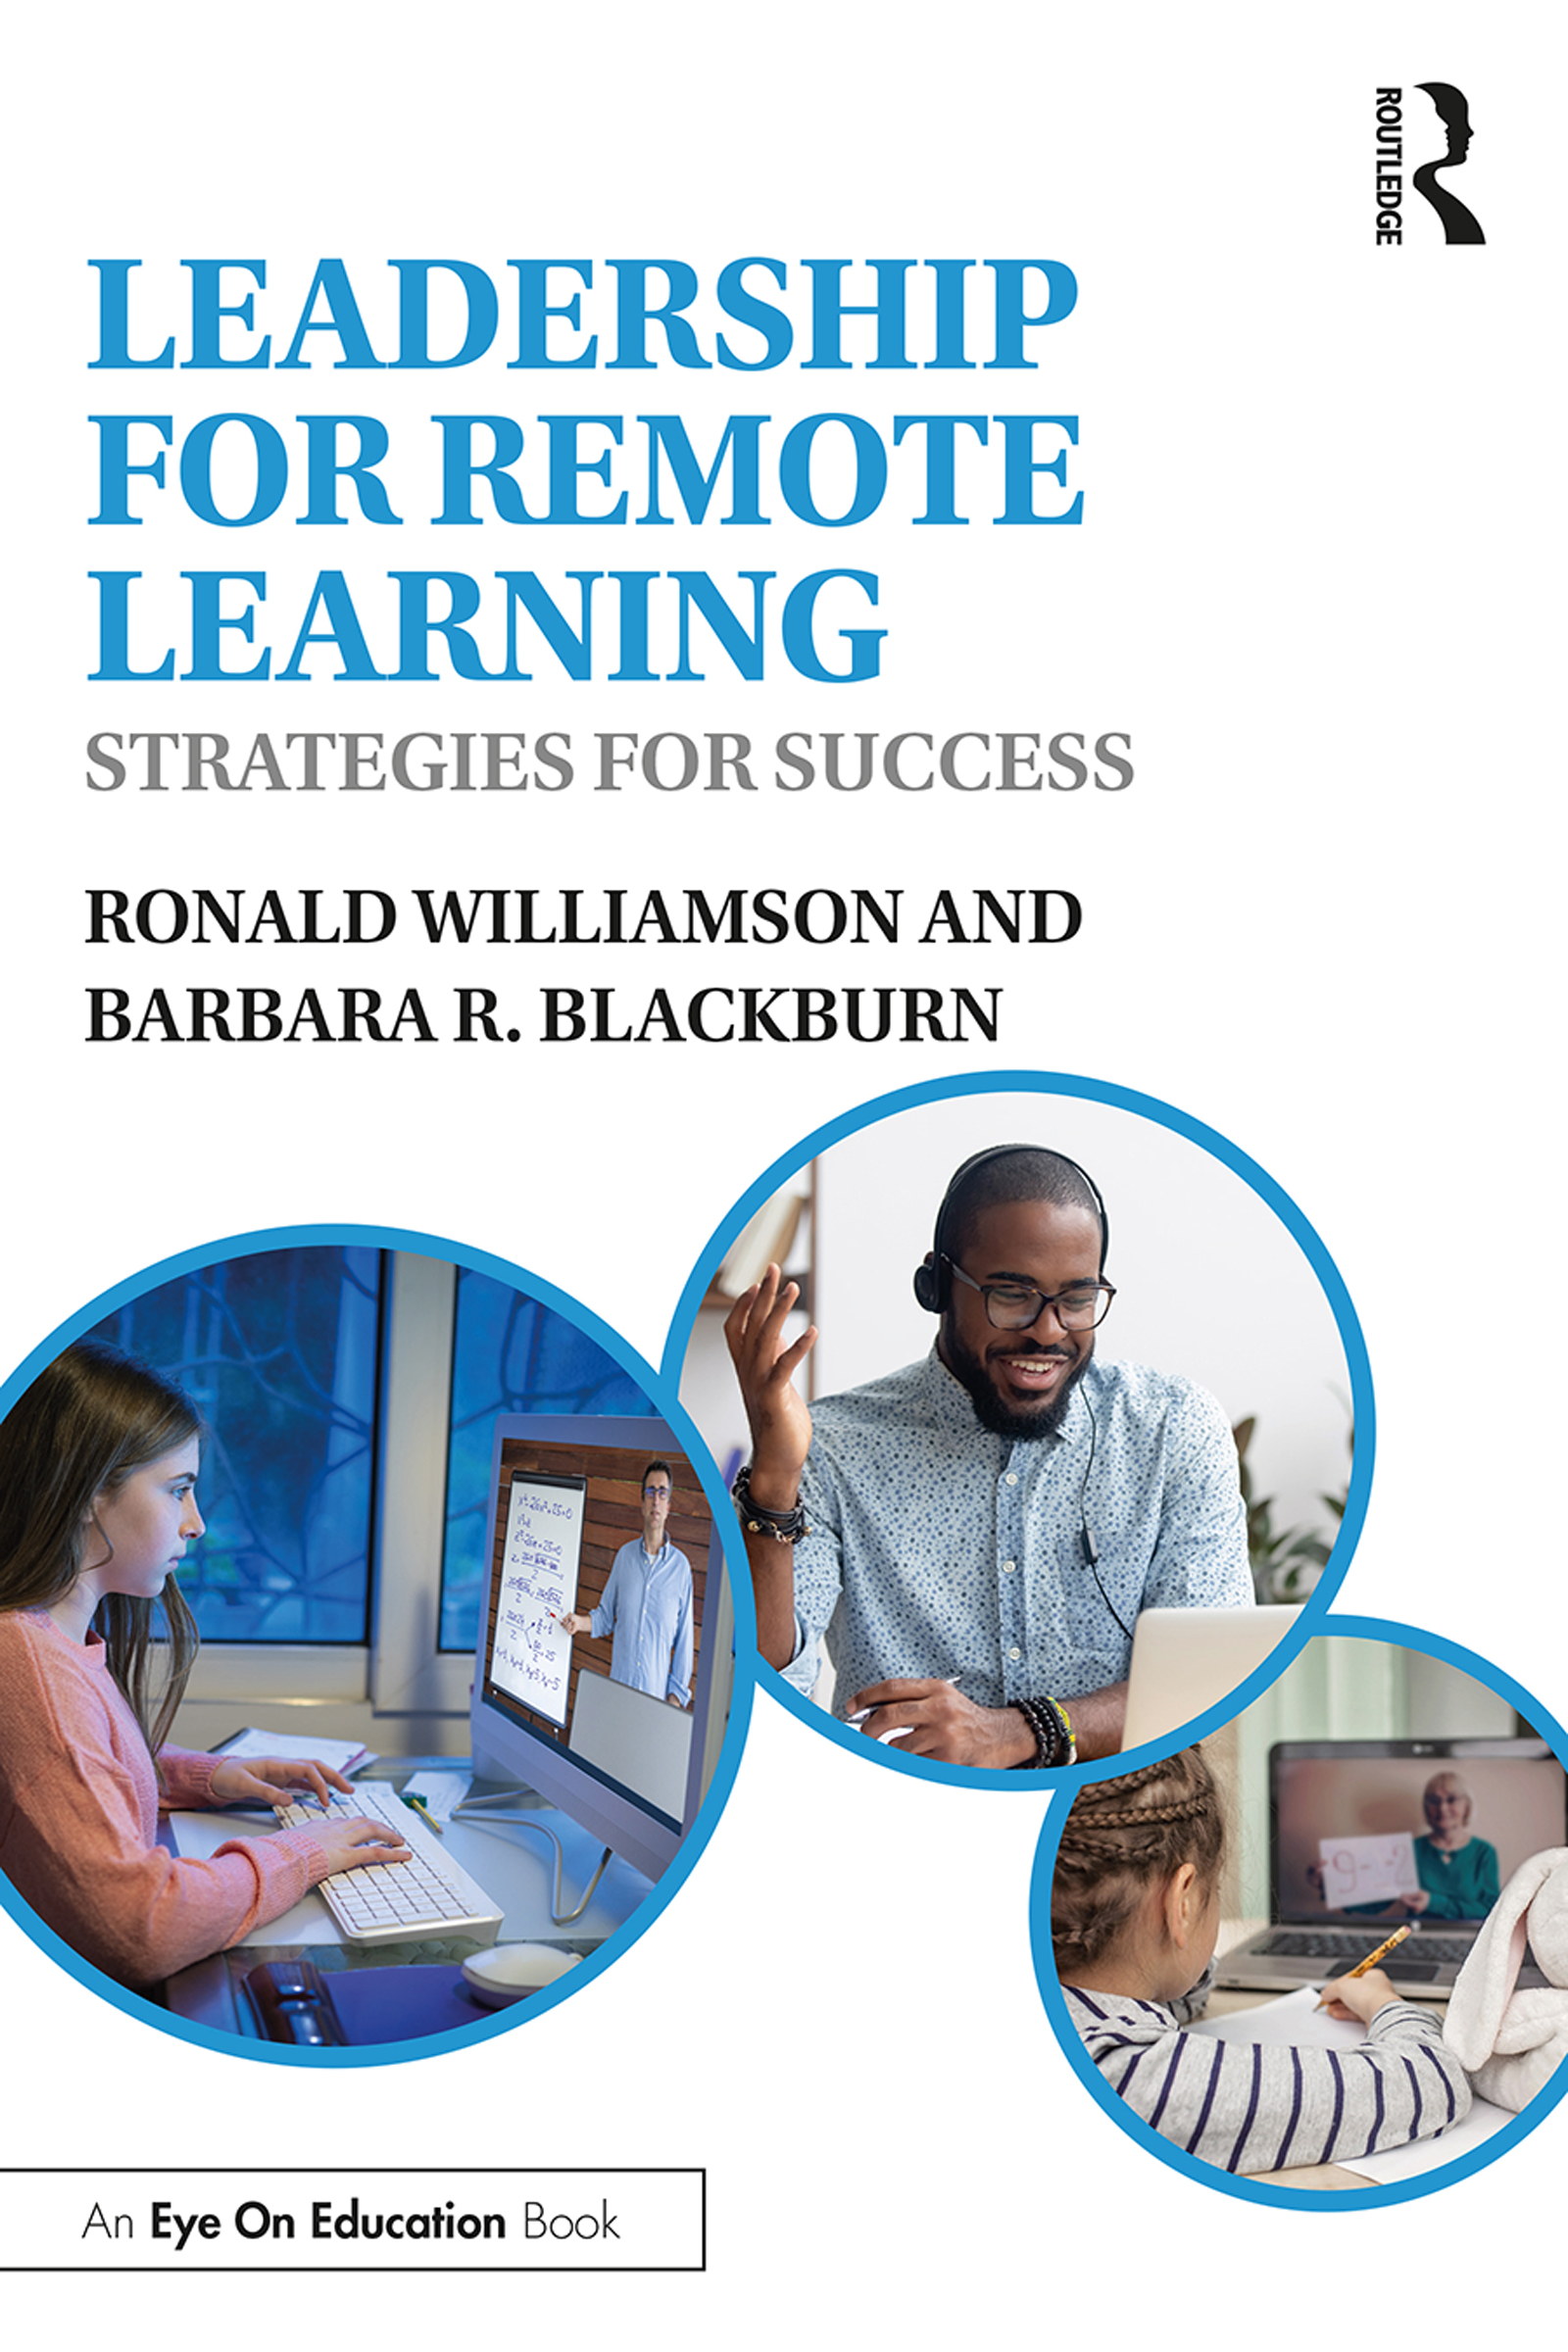 Instructional Leadership in a Remote Learning Setting